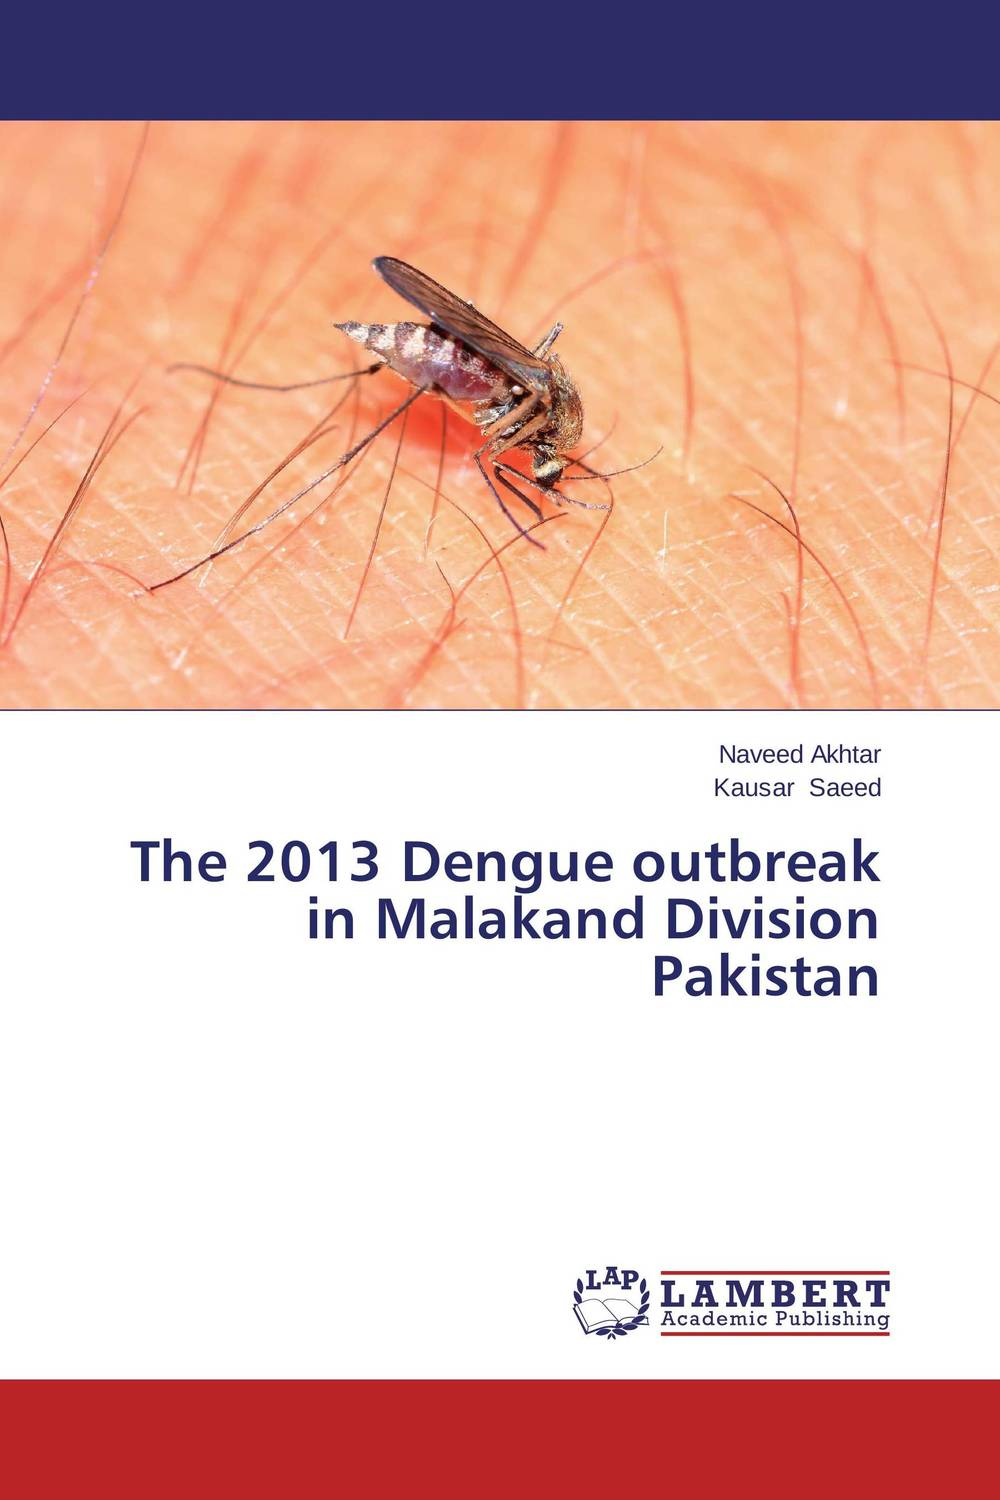 The 2013 Dengue outbreak in Malakand Division Pakistan mohammad mohsin khan and muhammad mustafa ali siddiqui dengue fever outbreak investigation